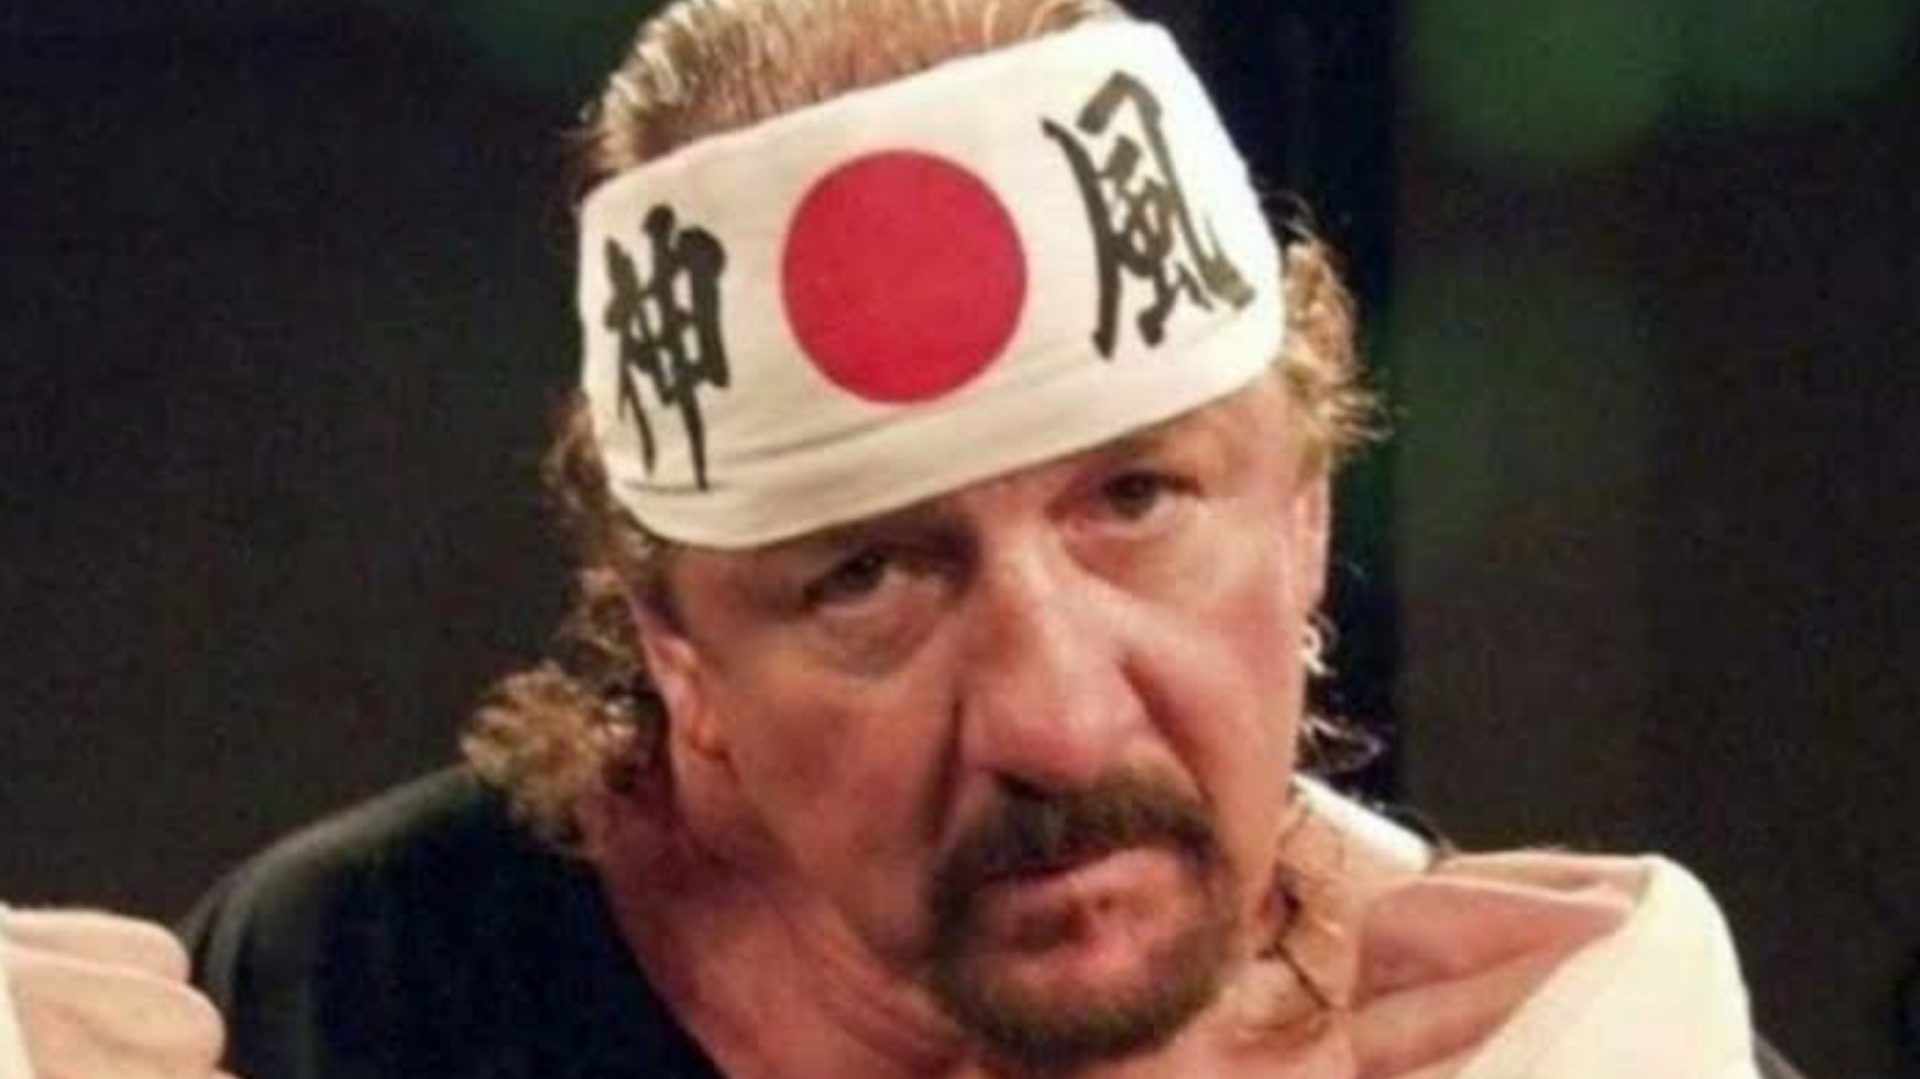 Terry Funk suffering from dementia, Pro-Wrestling industry wishes luck to icon - THE SPORTS ROOM